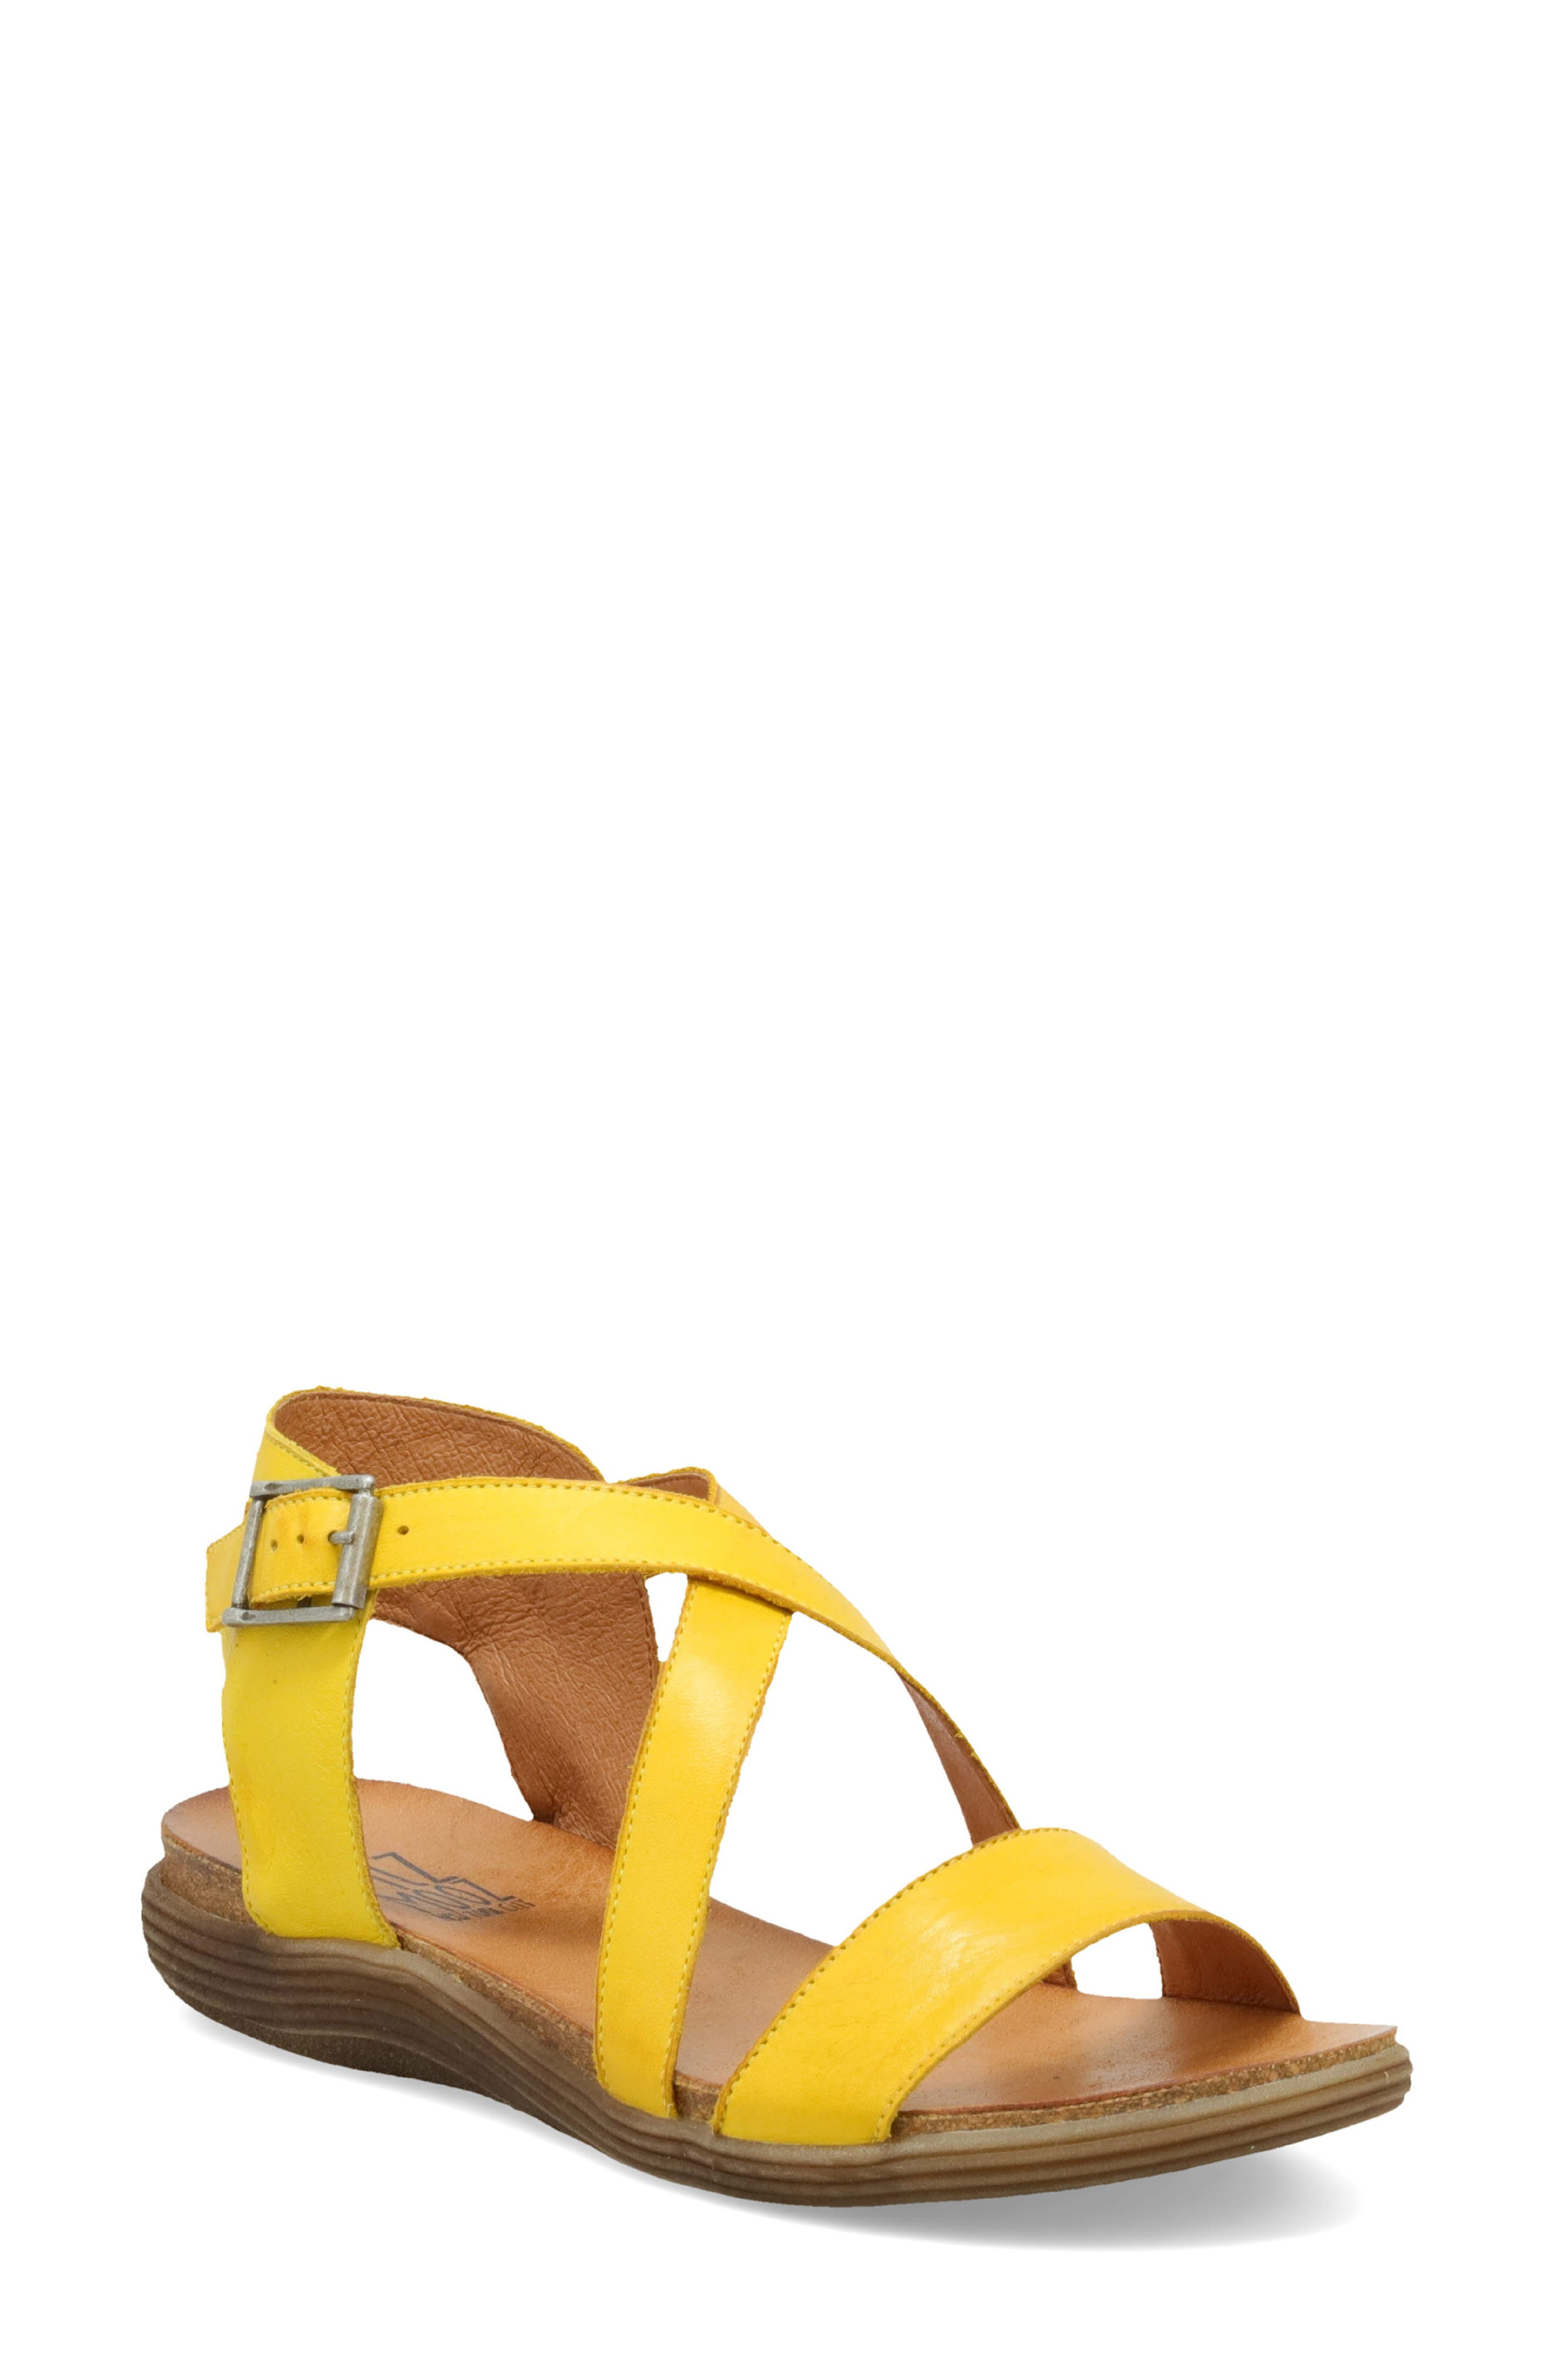 A comfy molded footbed supports your adventuring in this understated sandal with crisscrossed straps and a sophisticated palette of shades to choose from. Style Name: Miz Mooz Margarita Sandal (Women). Style Number: 5998707. Available in stores.